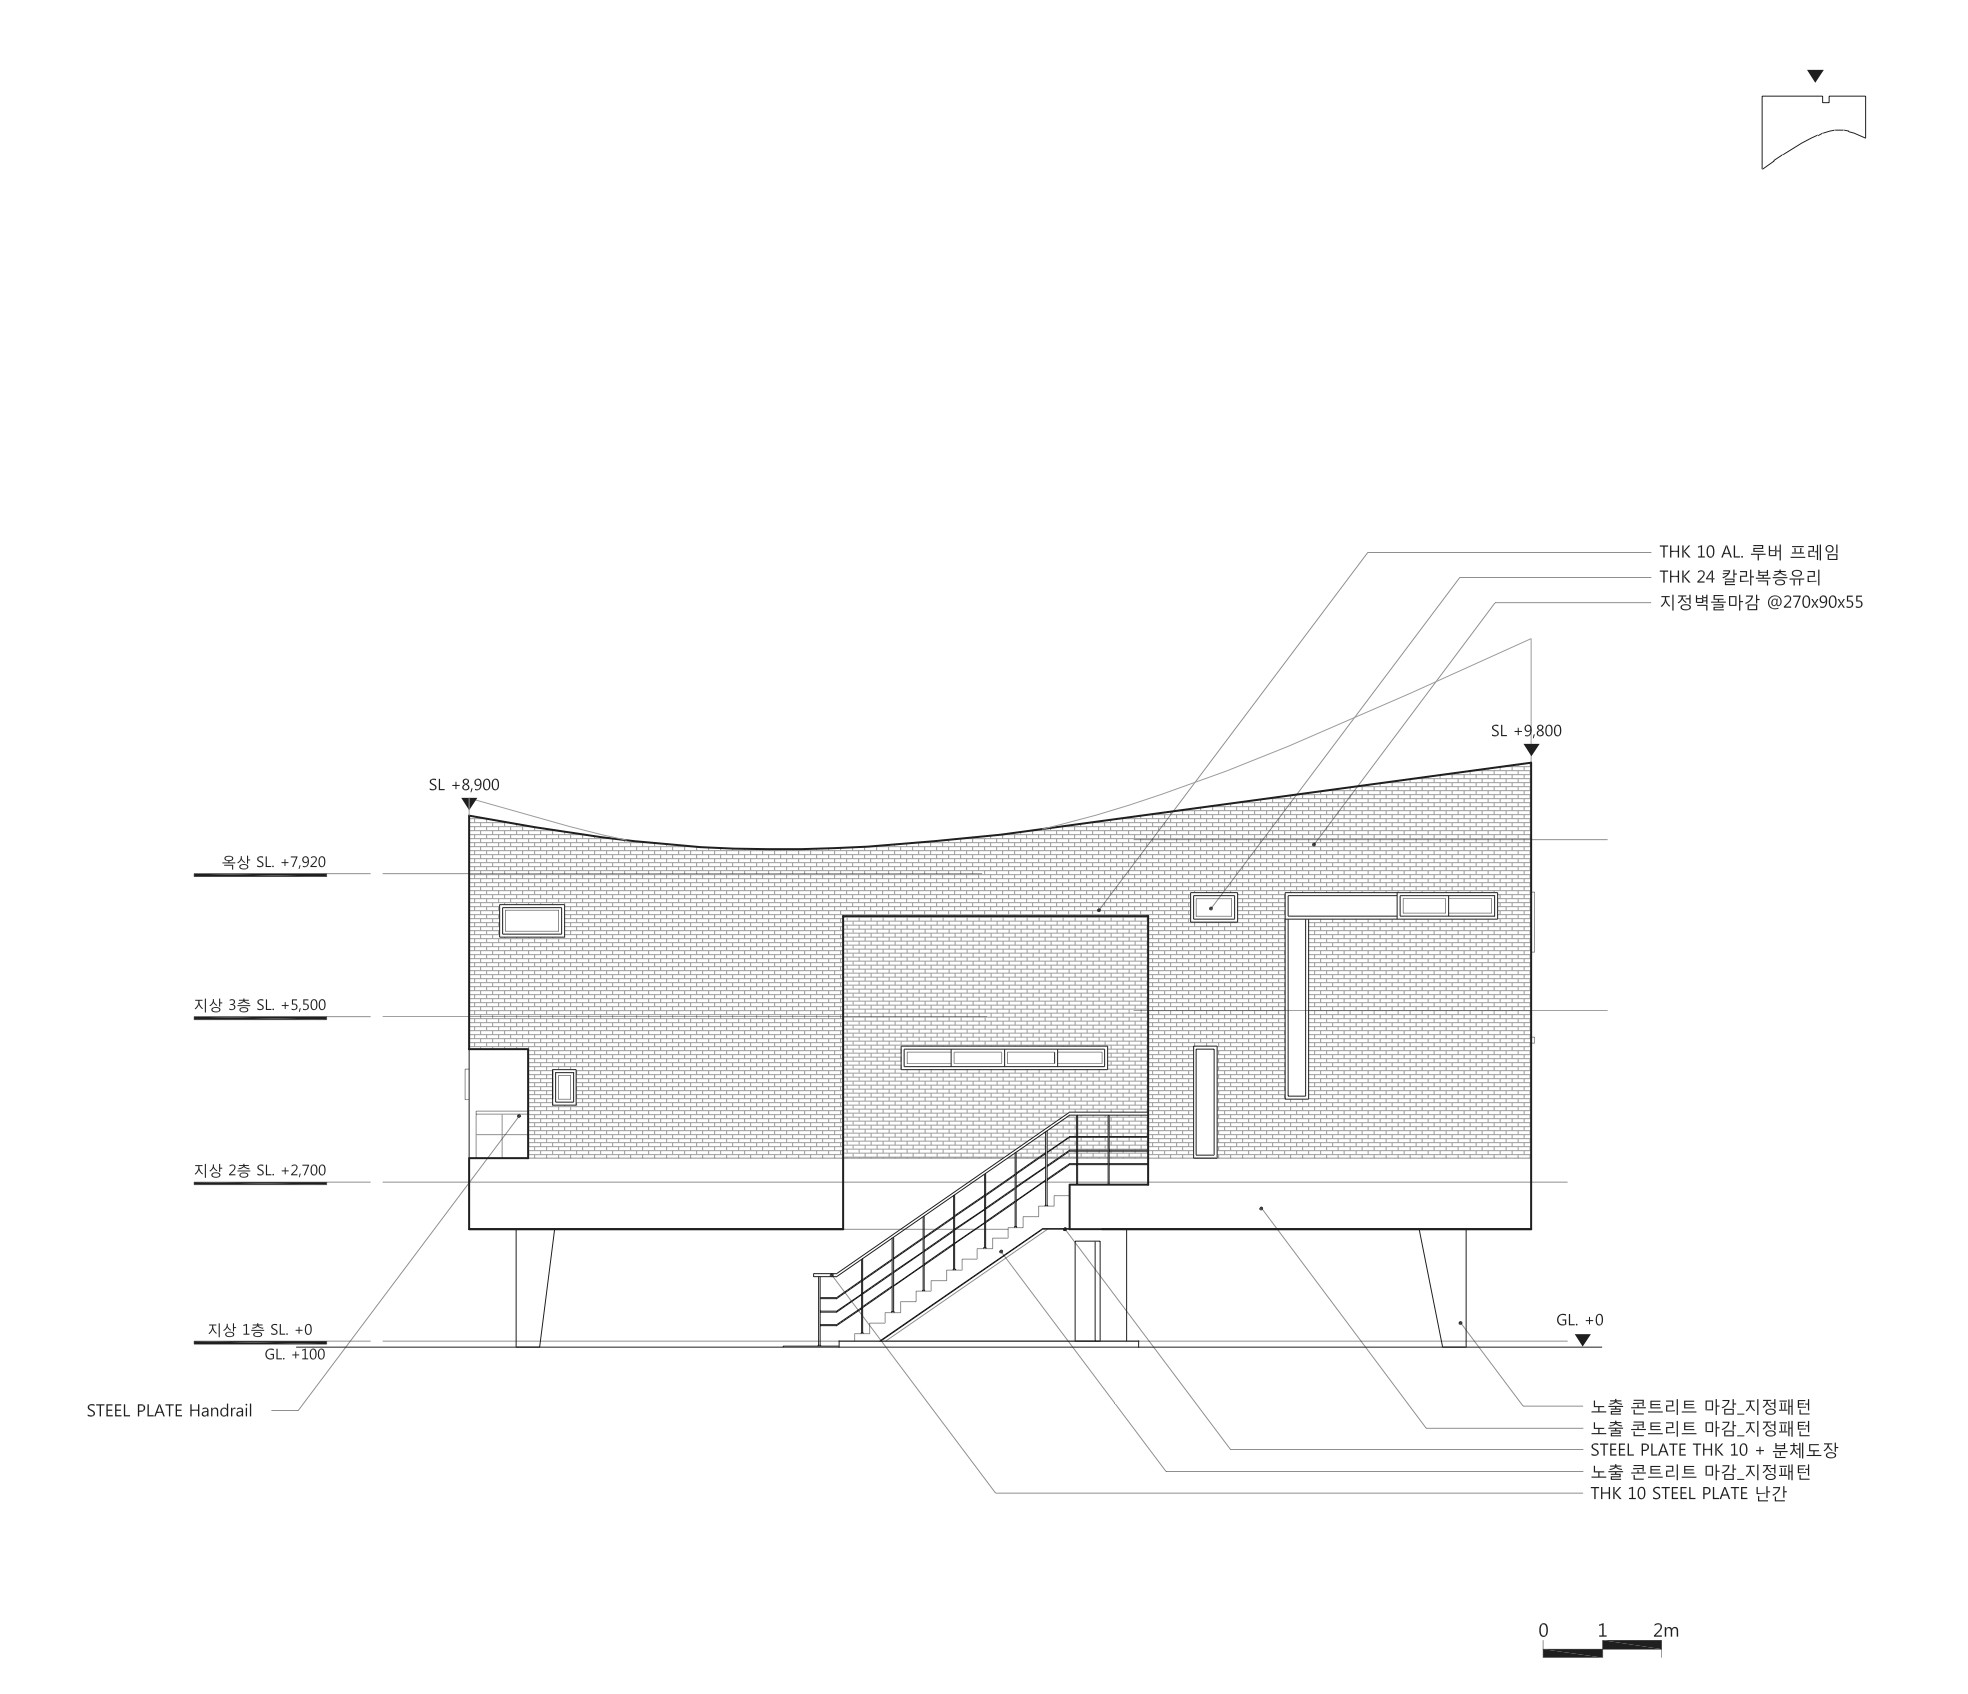 Gallery Of The Curving House JOHO Architecture - Curving house joho architecture